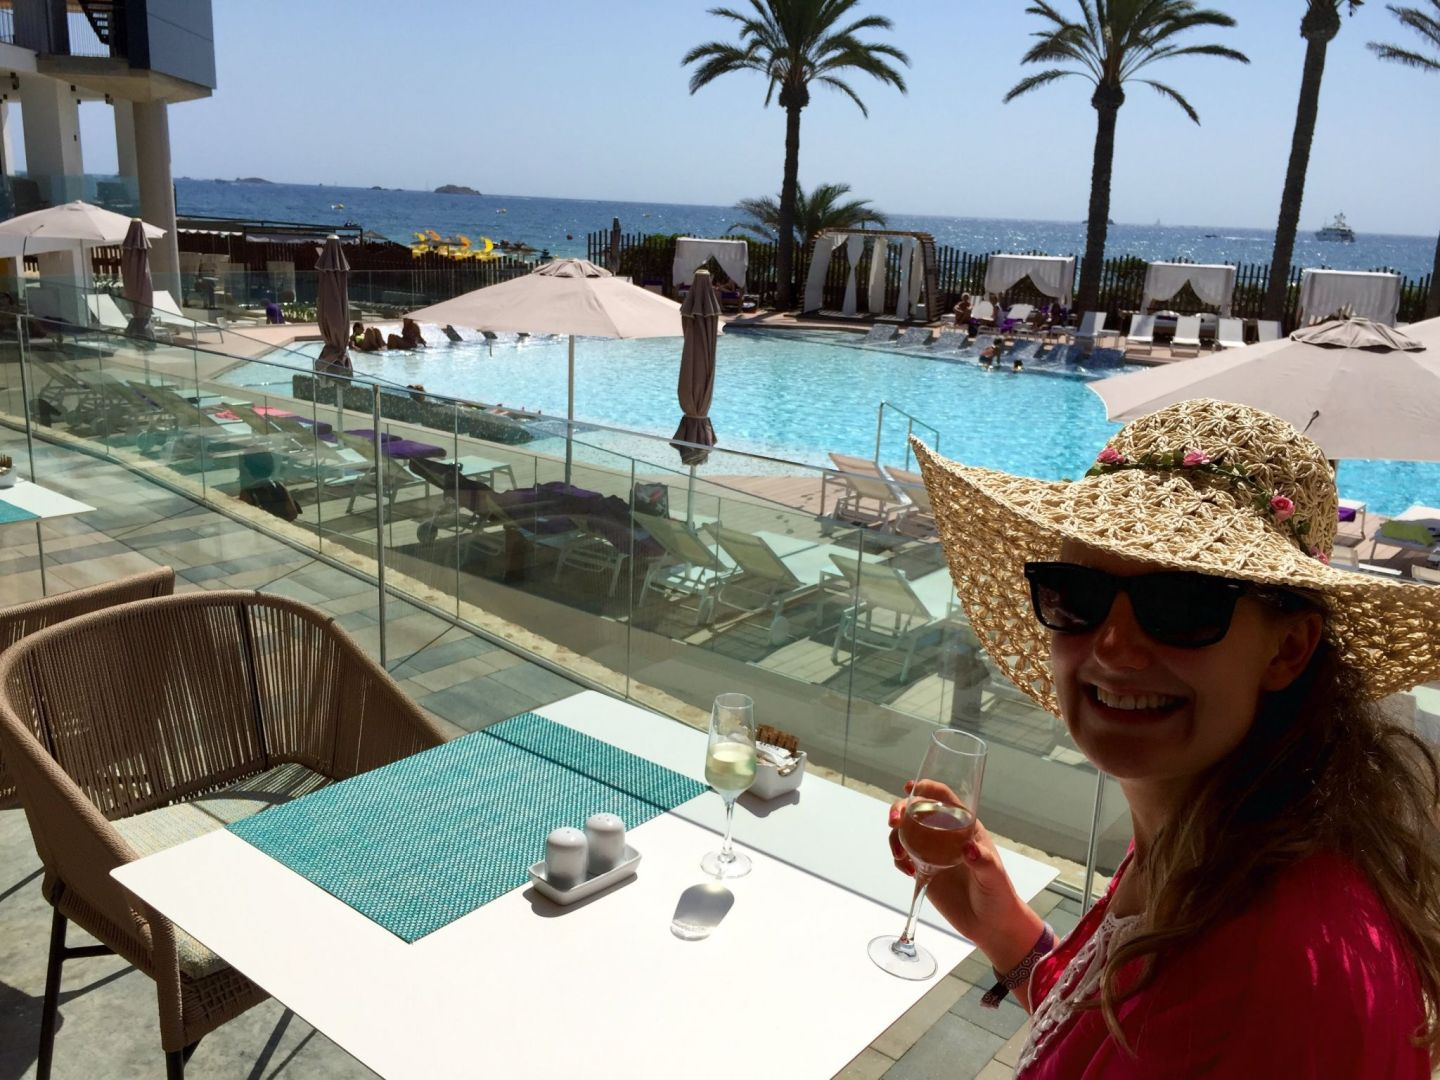 Jo drinking by the pool in Ibiza